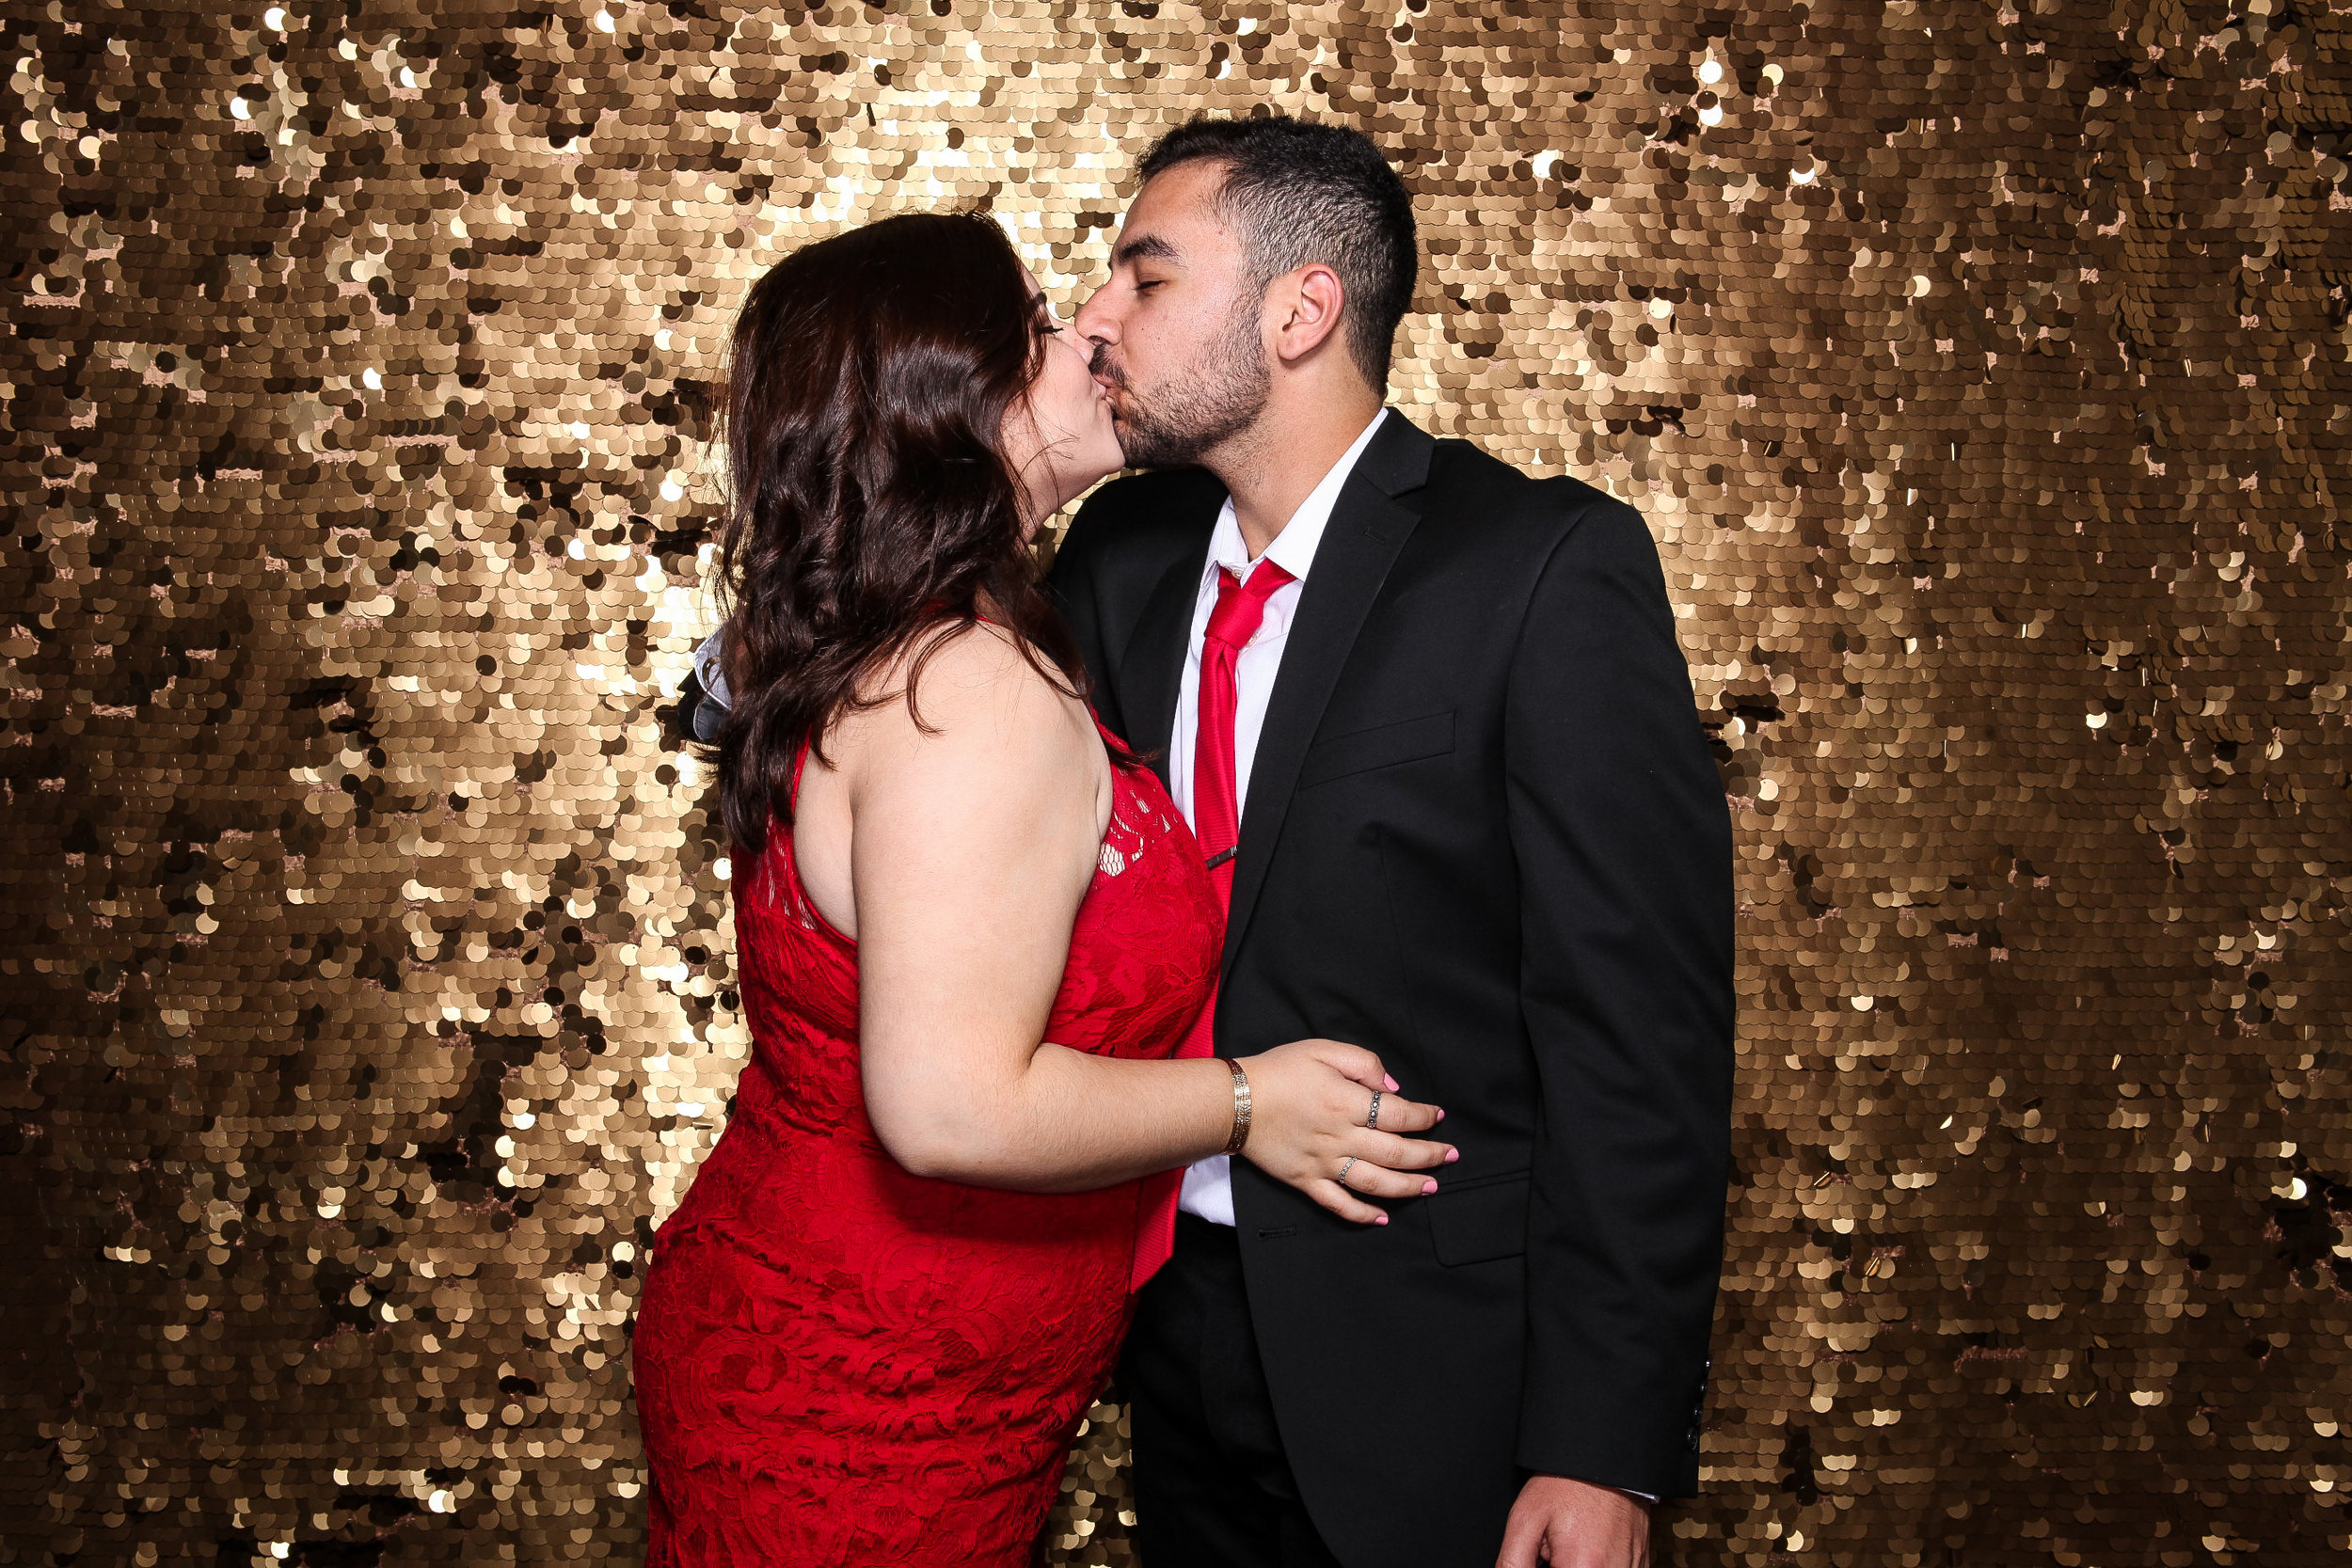 20190503_Adelphi_Senior_Formal-258.jpg